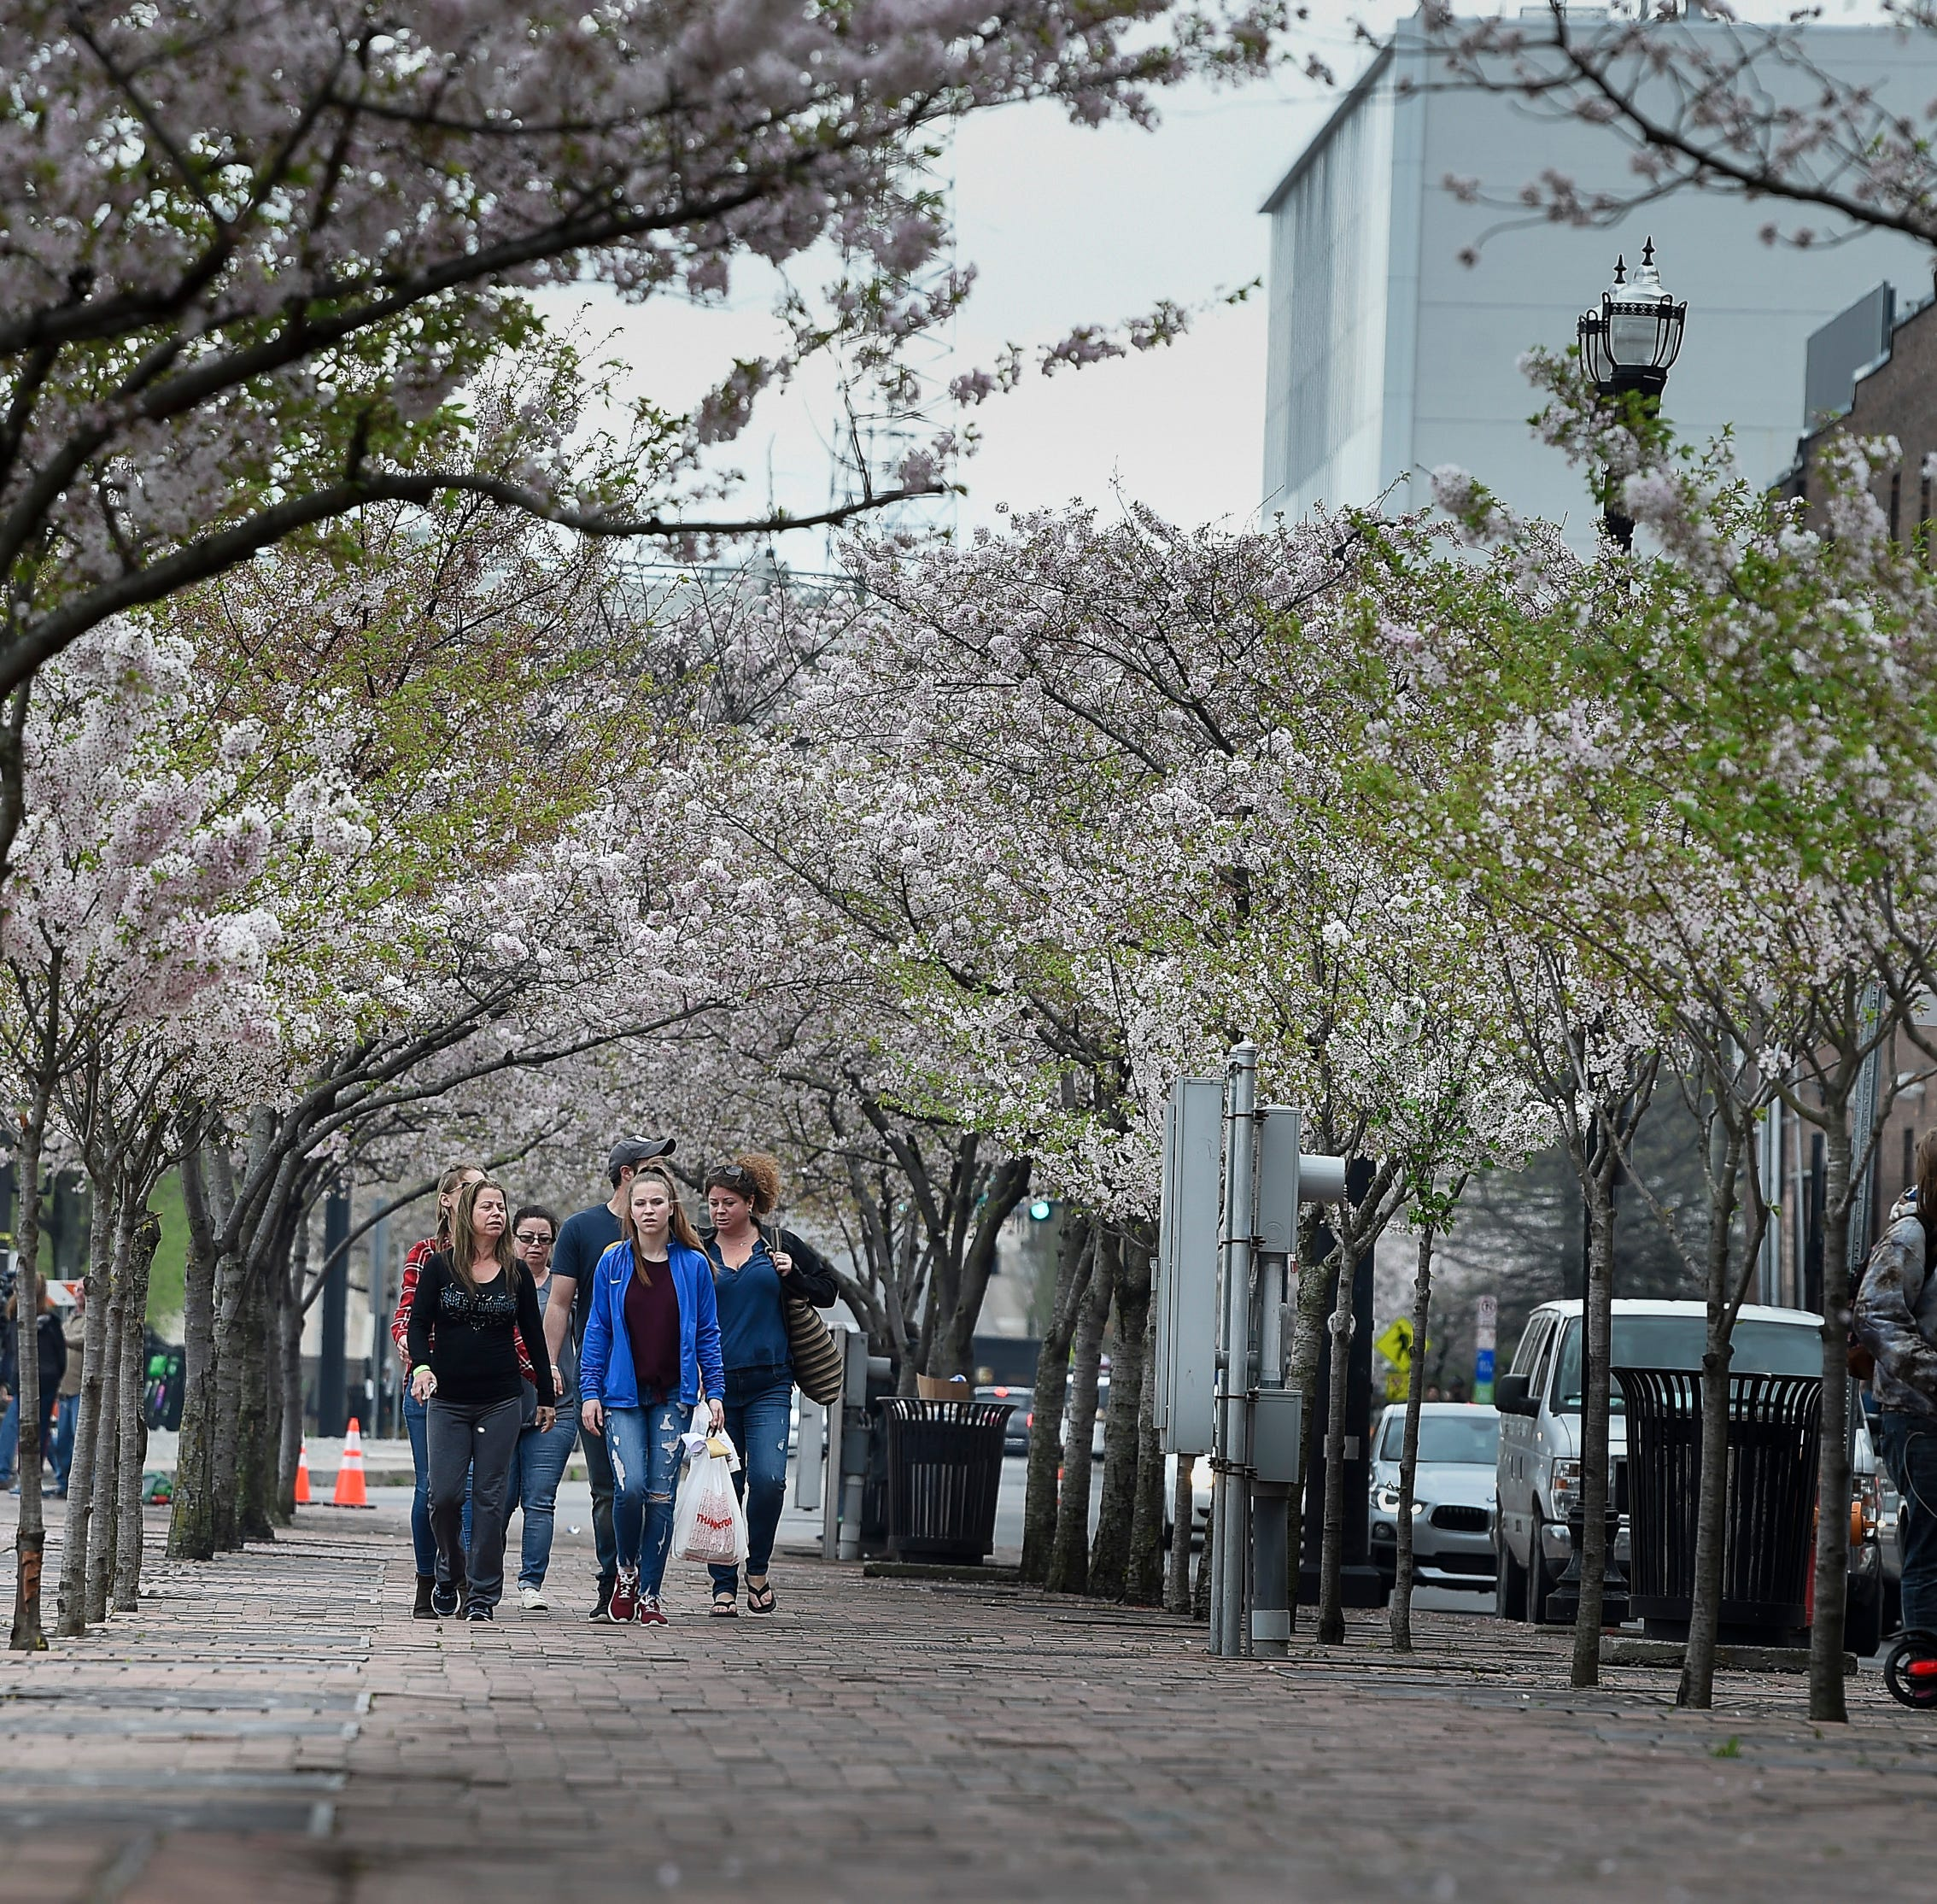 Nashville to cut down cherry trees to make way for NFL draft stage